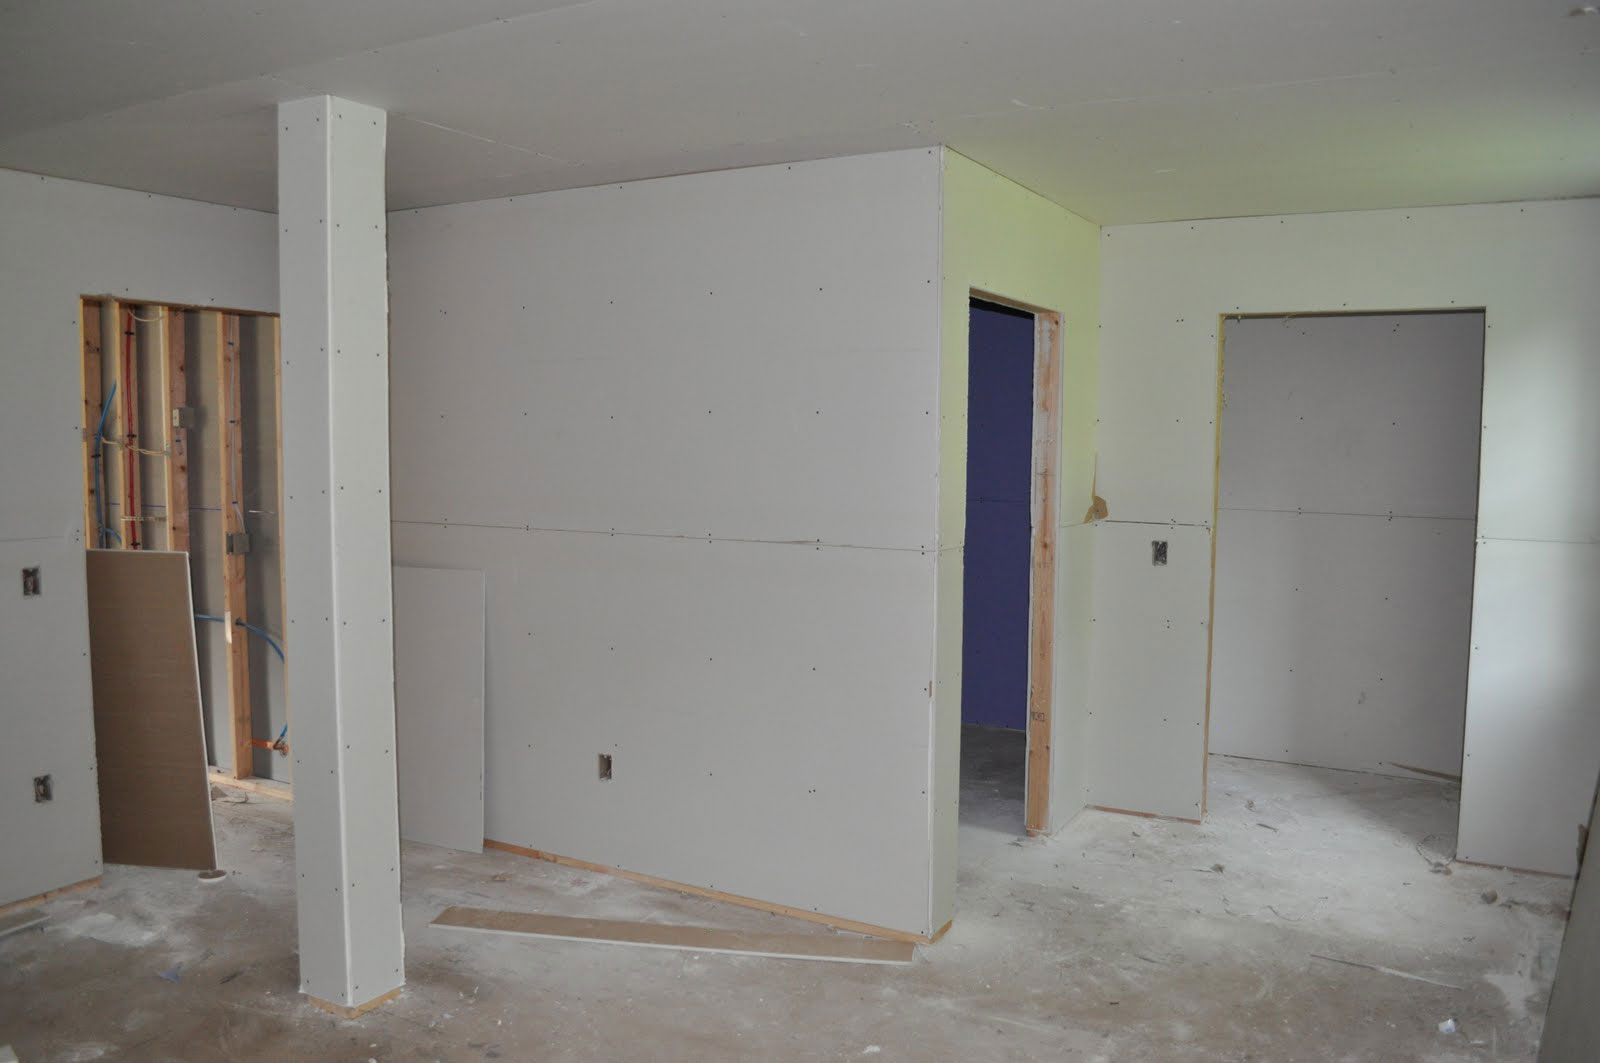 Drywall22 How thick is drywall?  Instructions for drywall size (length and height included)